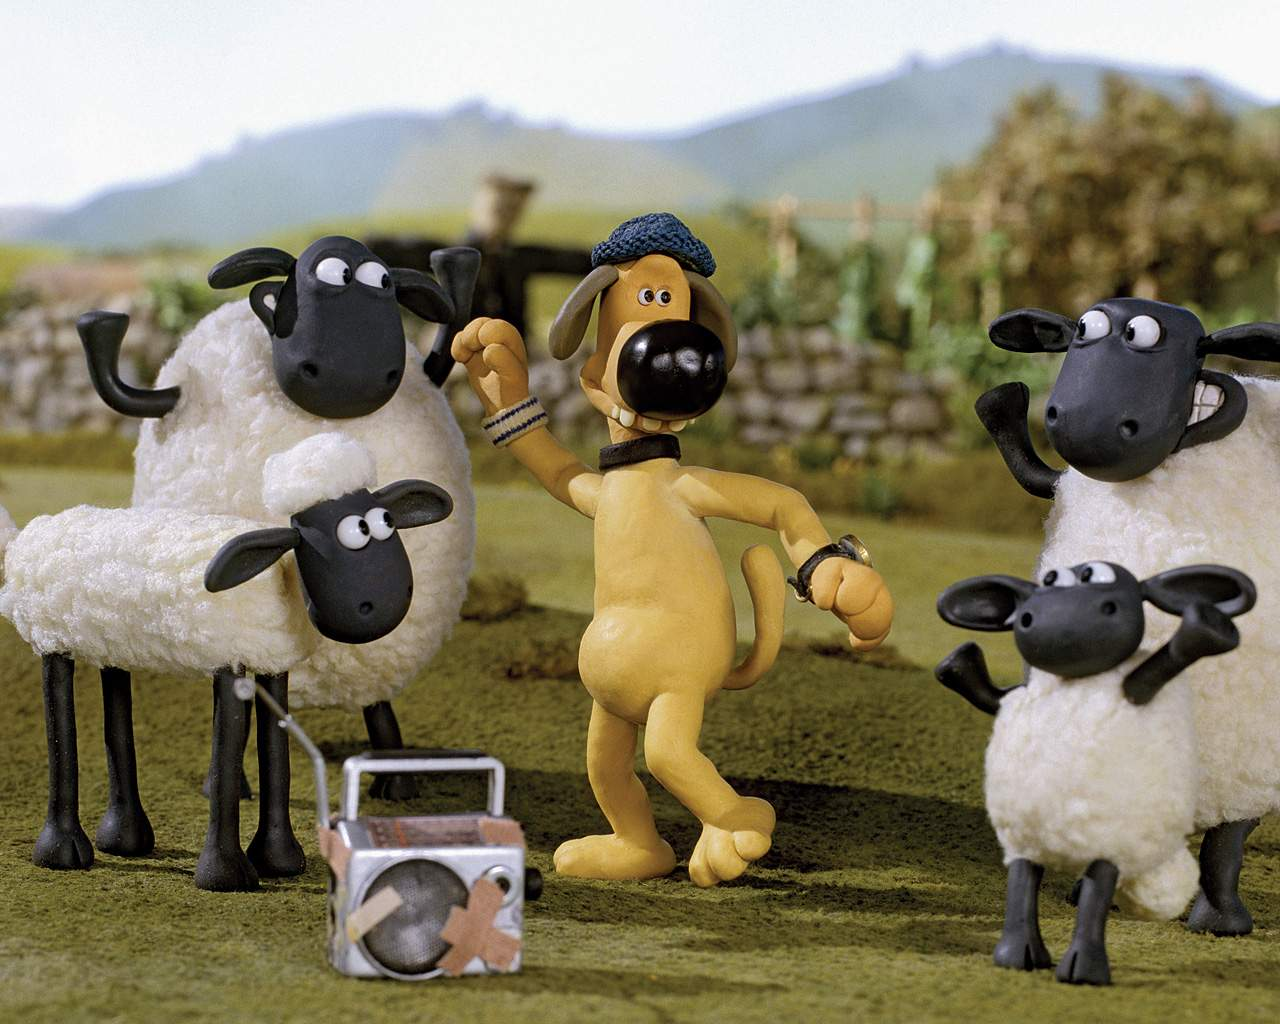 shaun si kambing, wallpaper shaun the sheep, foto shaun, kambing lucu